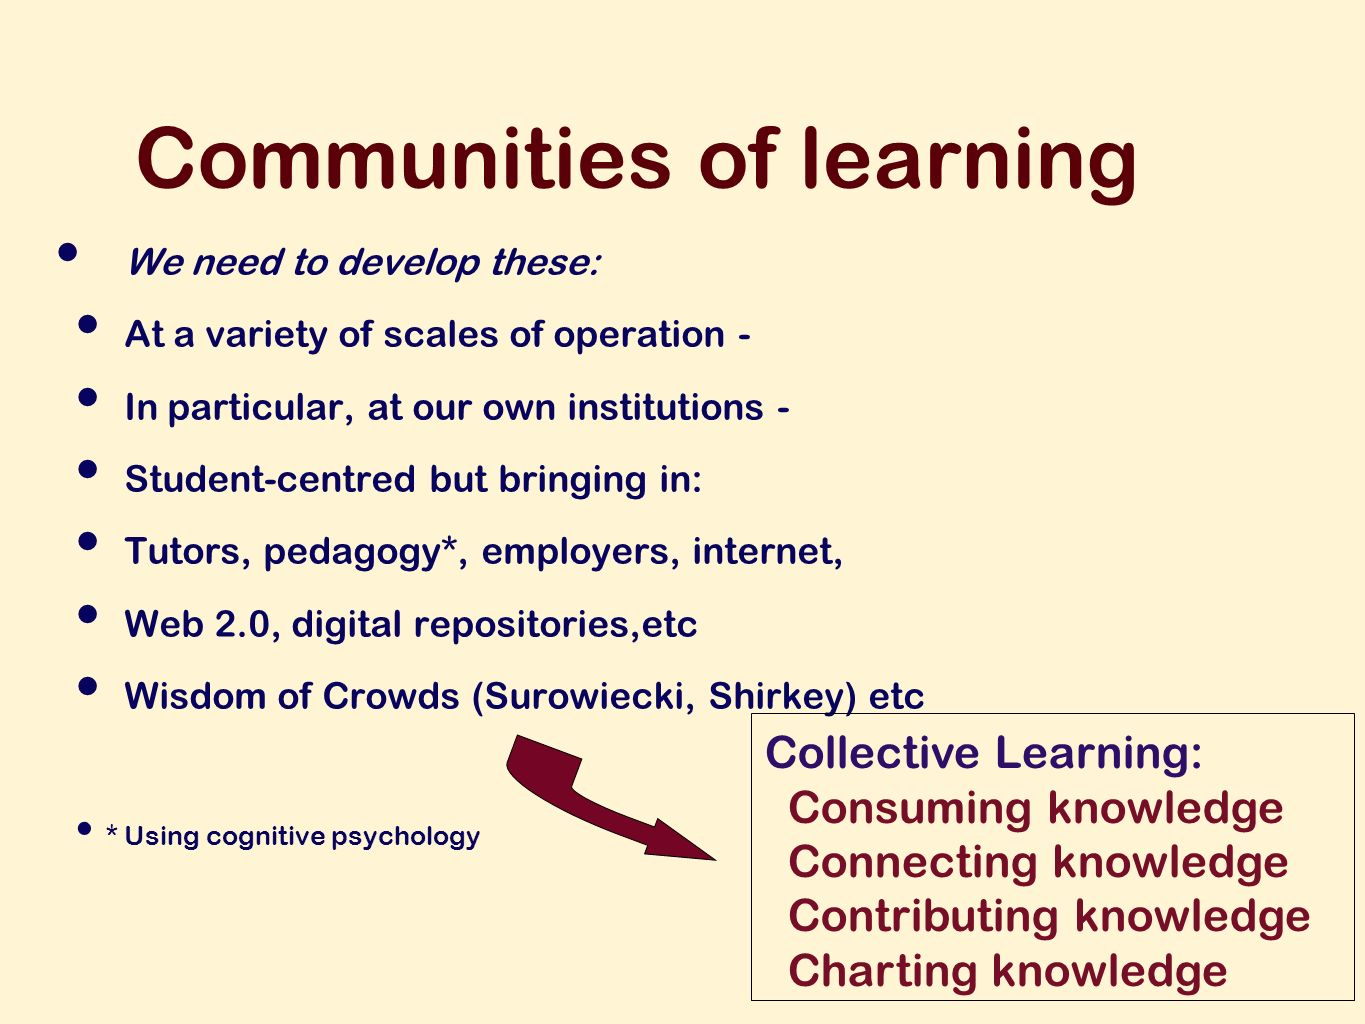 Communities of learning We need to develop these: At a variety of scales of operation - In particular, at our own institutions - Student-centred but bringing in: Tutors, pedagogy*, employers, internet, Web 2.0, digital repositories,etc Wisdom of Crowds (Surowiecki, Shirkey) etc * Using cognitive psychology Collective Learning: Consuming knowledge Connecting knowledge Contributing knowledge Charting knowledge